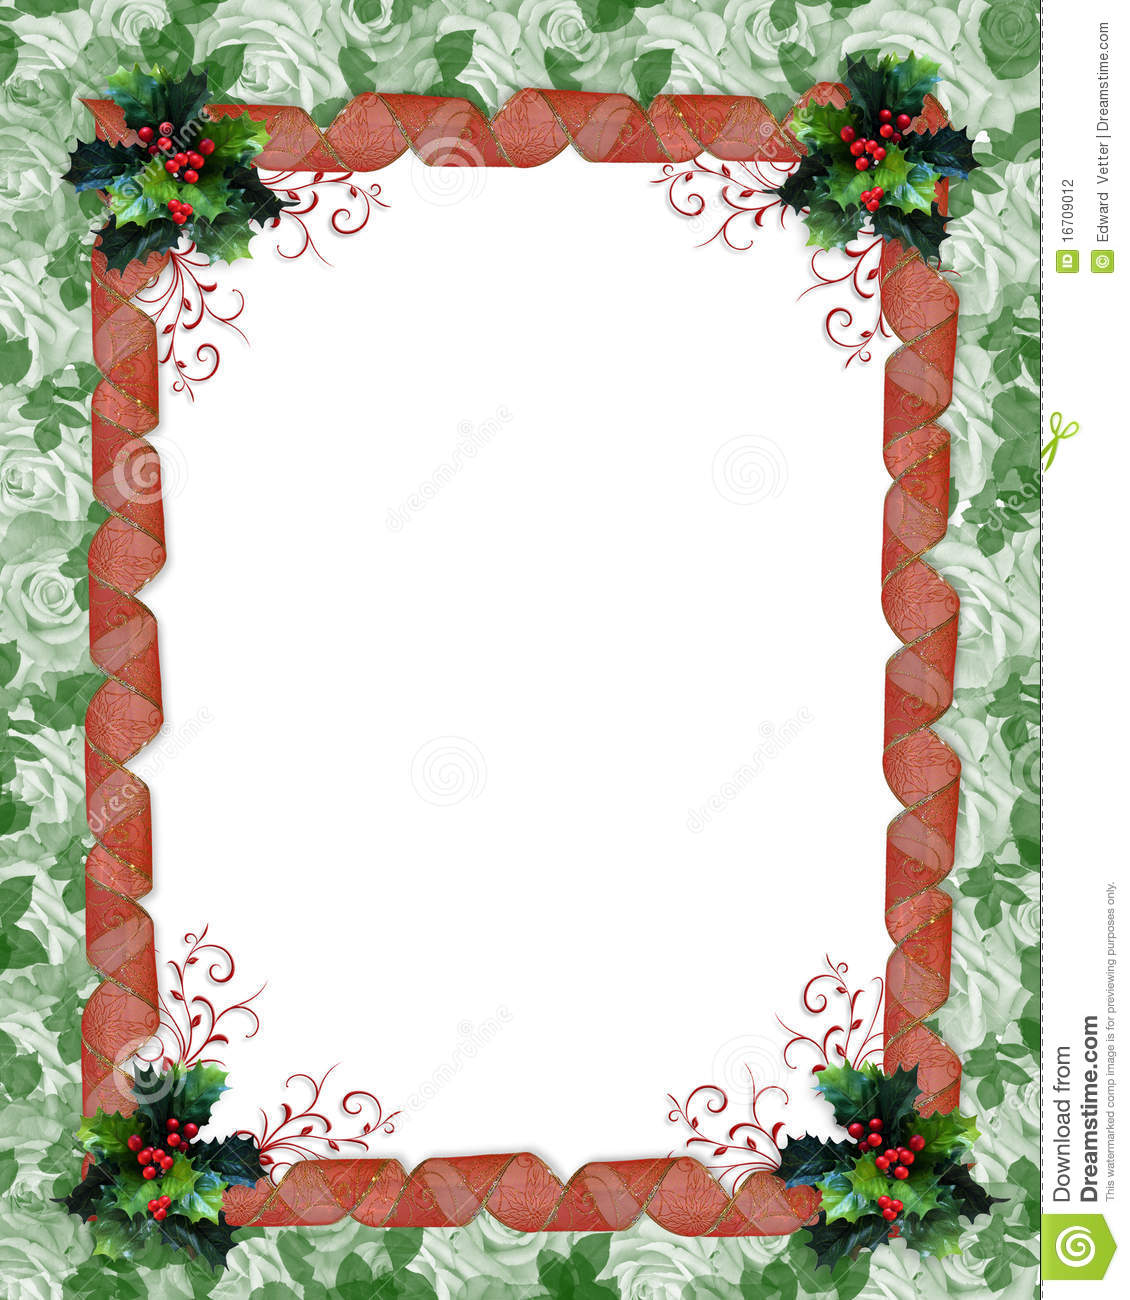 christmas border ribbons and holly stock illustration illustration